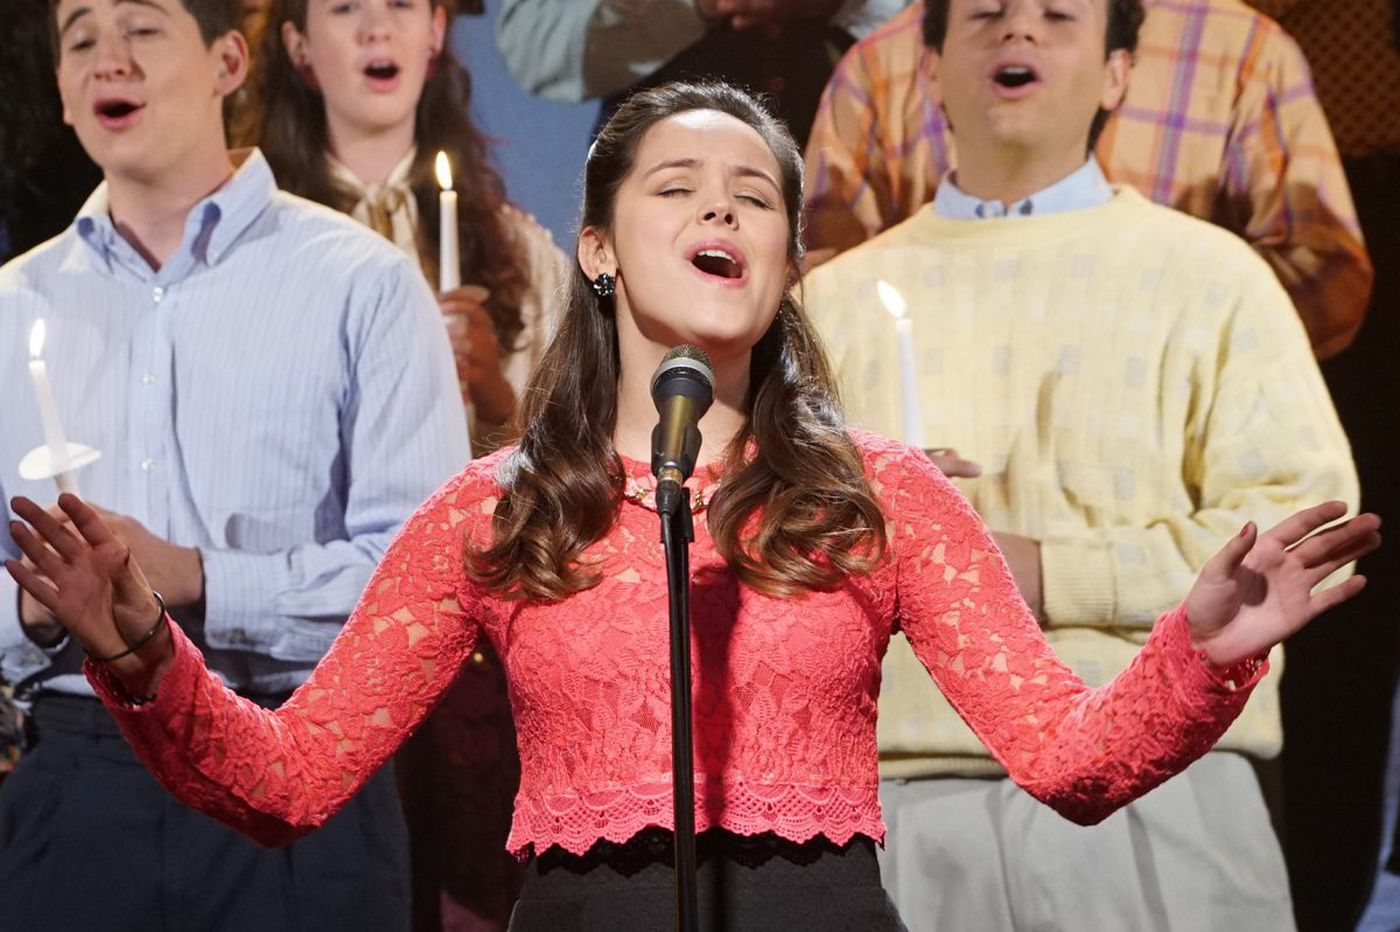 'Goldbergs' star Hayley Orrantia taking her act to the real Jenkintown